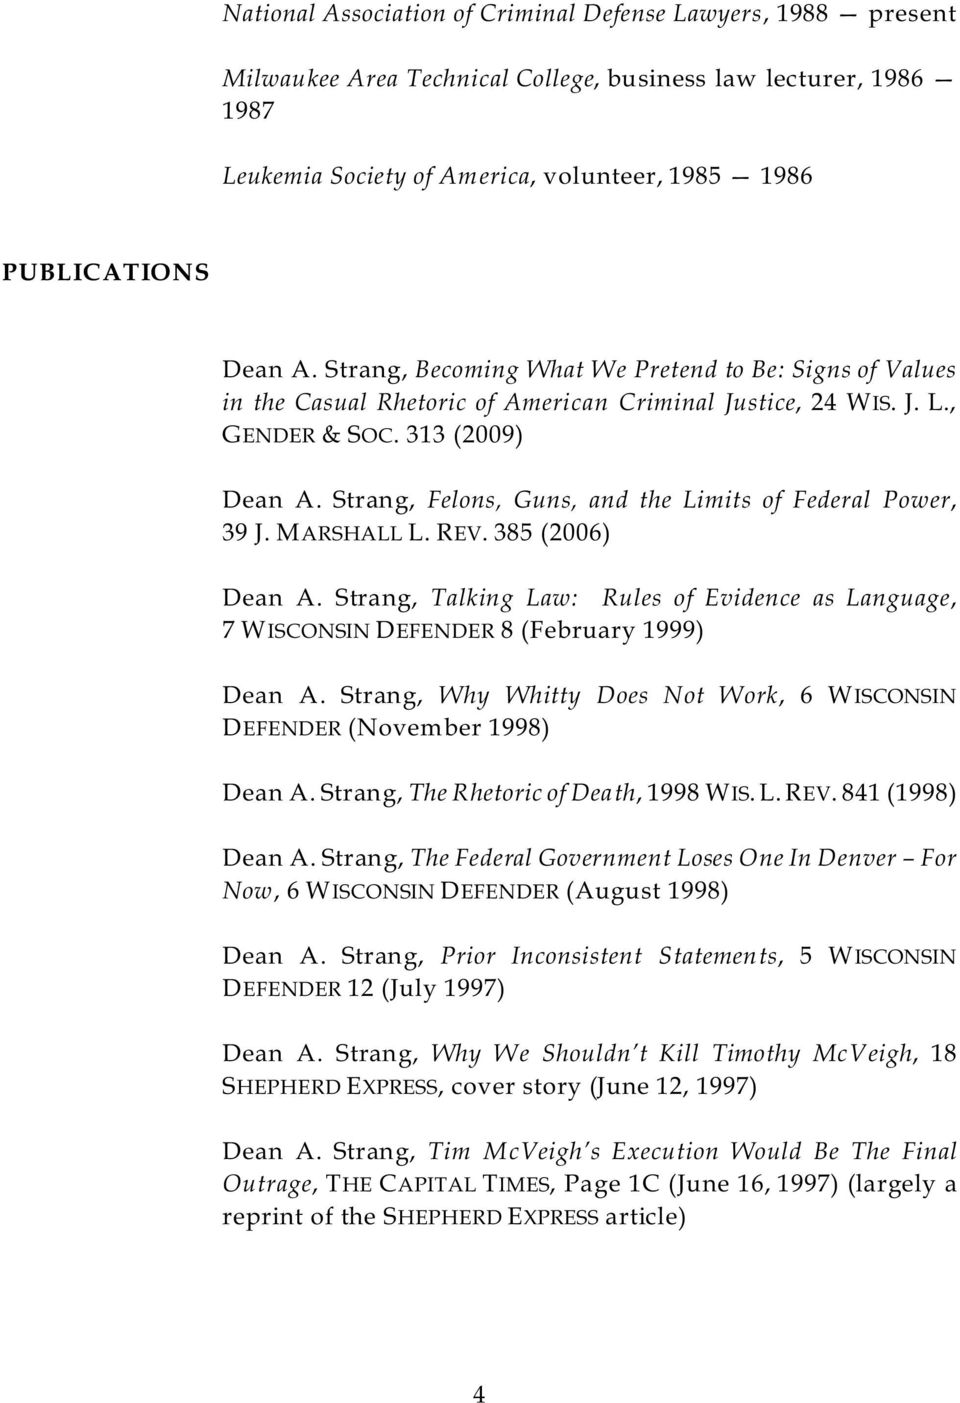 Strang, Felons, Guns, and the Limits of Federal Power, 39 J. MARSHALL L. REV. 385 (2006) Dean A. Strang, Talking Law: Rules of Evidence as Language, 7 WISCONSIN DEFENDER 8 (February 1999) Dean A.